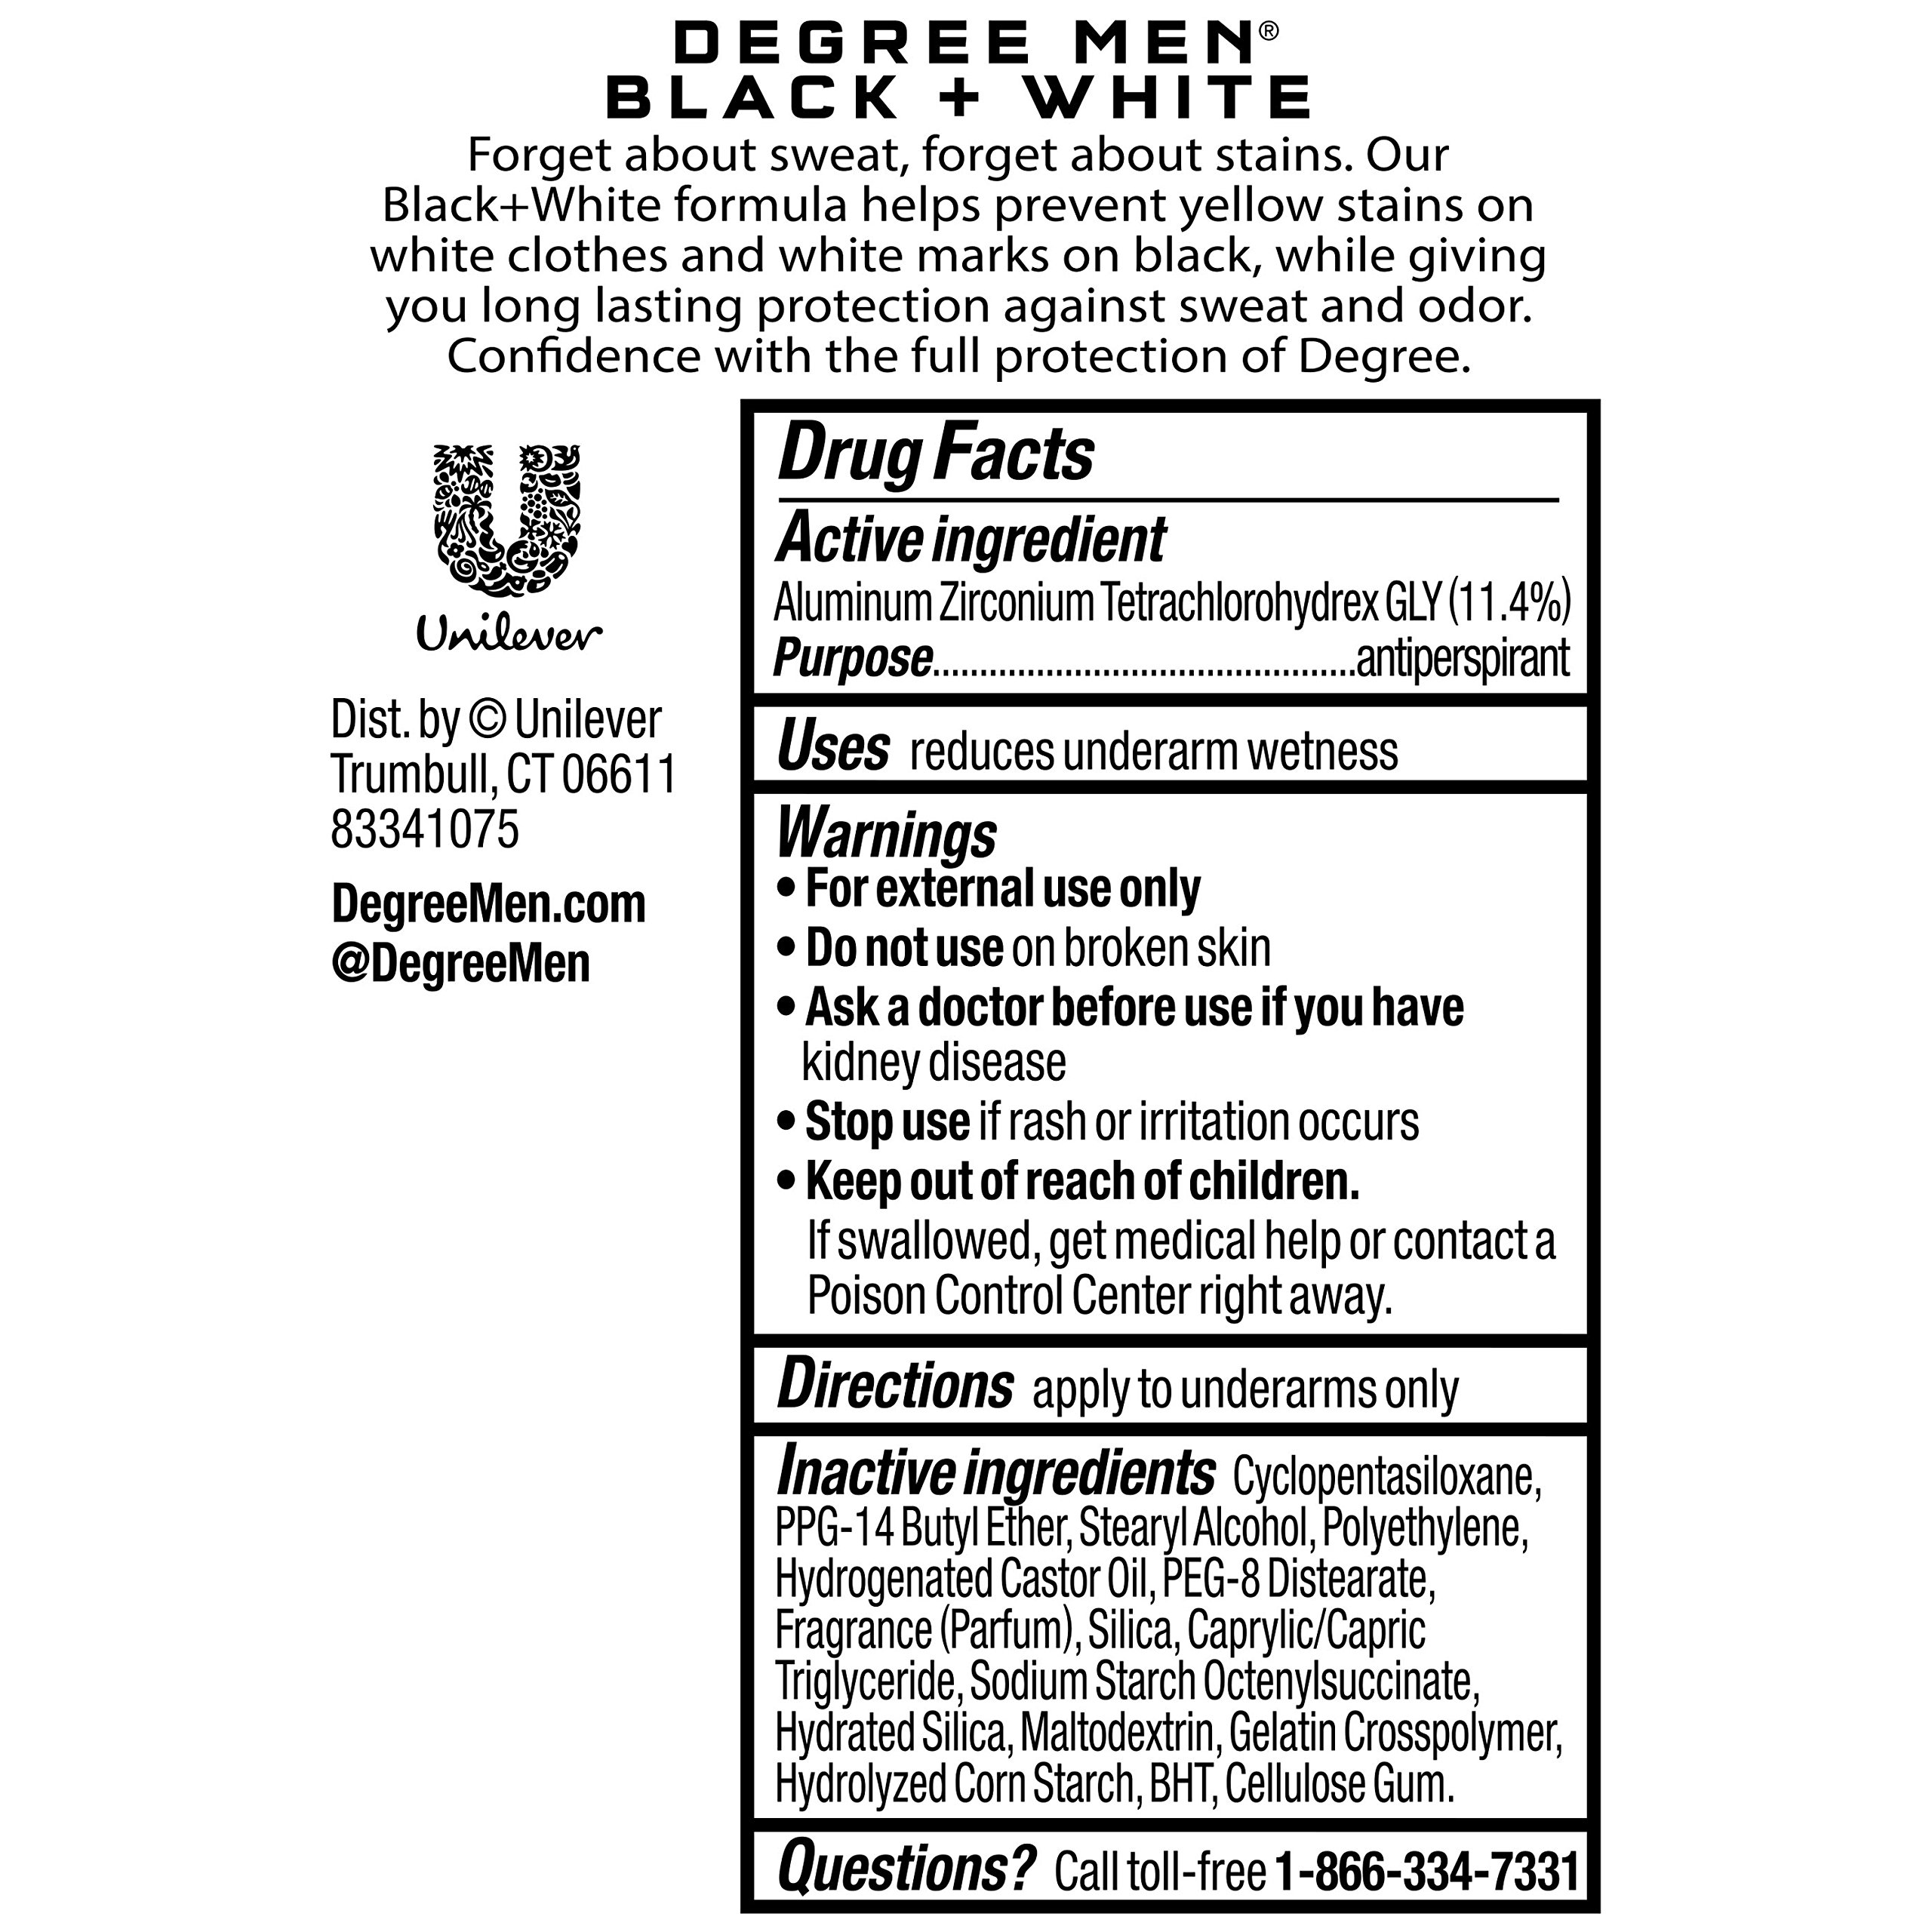 Degree Men UltraClear Antiperspirant Deodorant, Black+White, 2.7 oz, 4 count by DEGREE MENS DEO (Image #2)